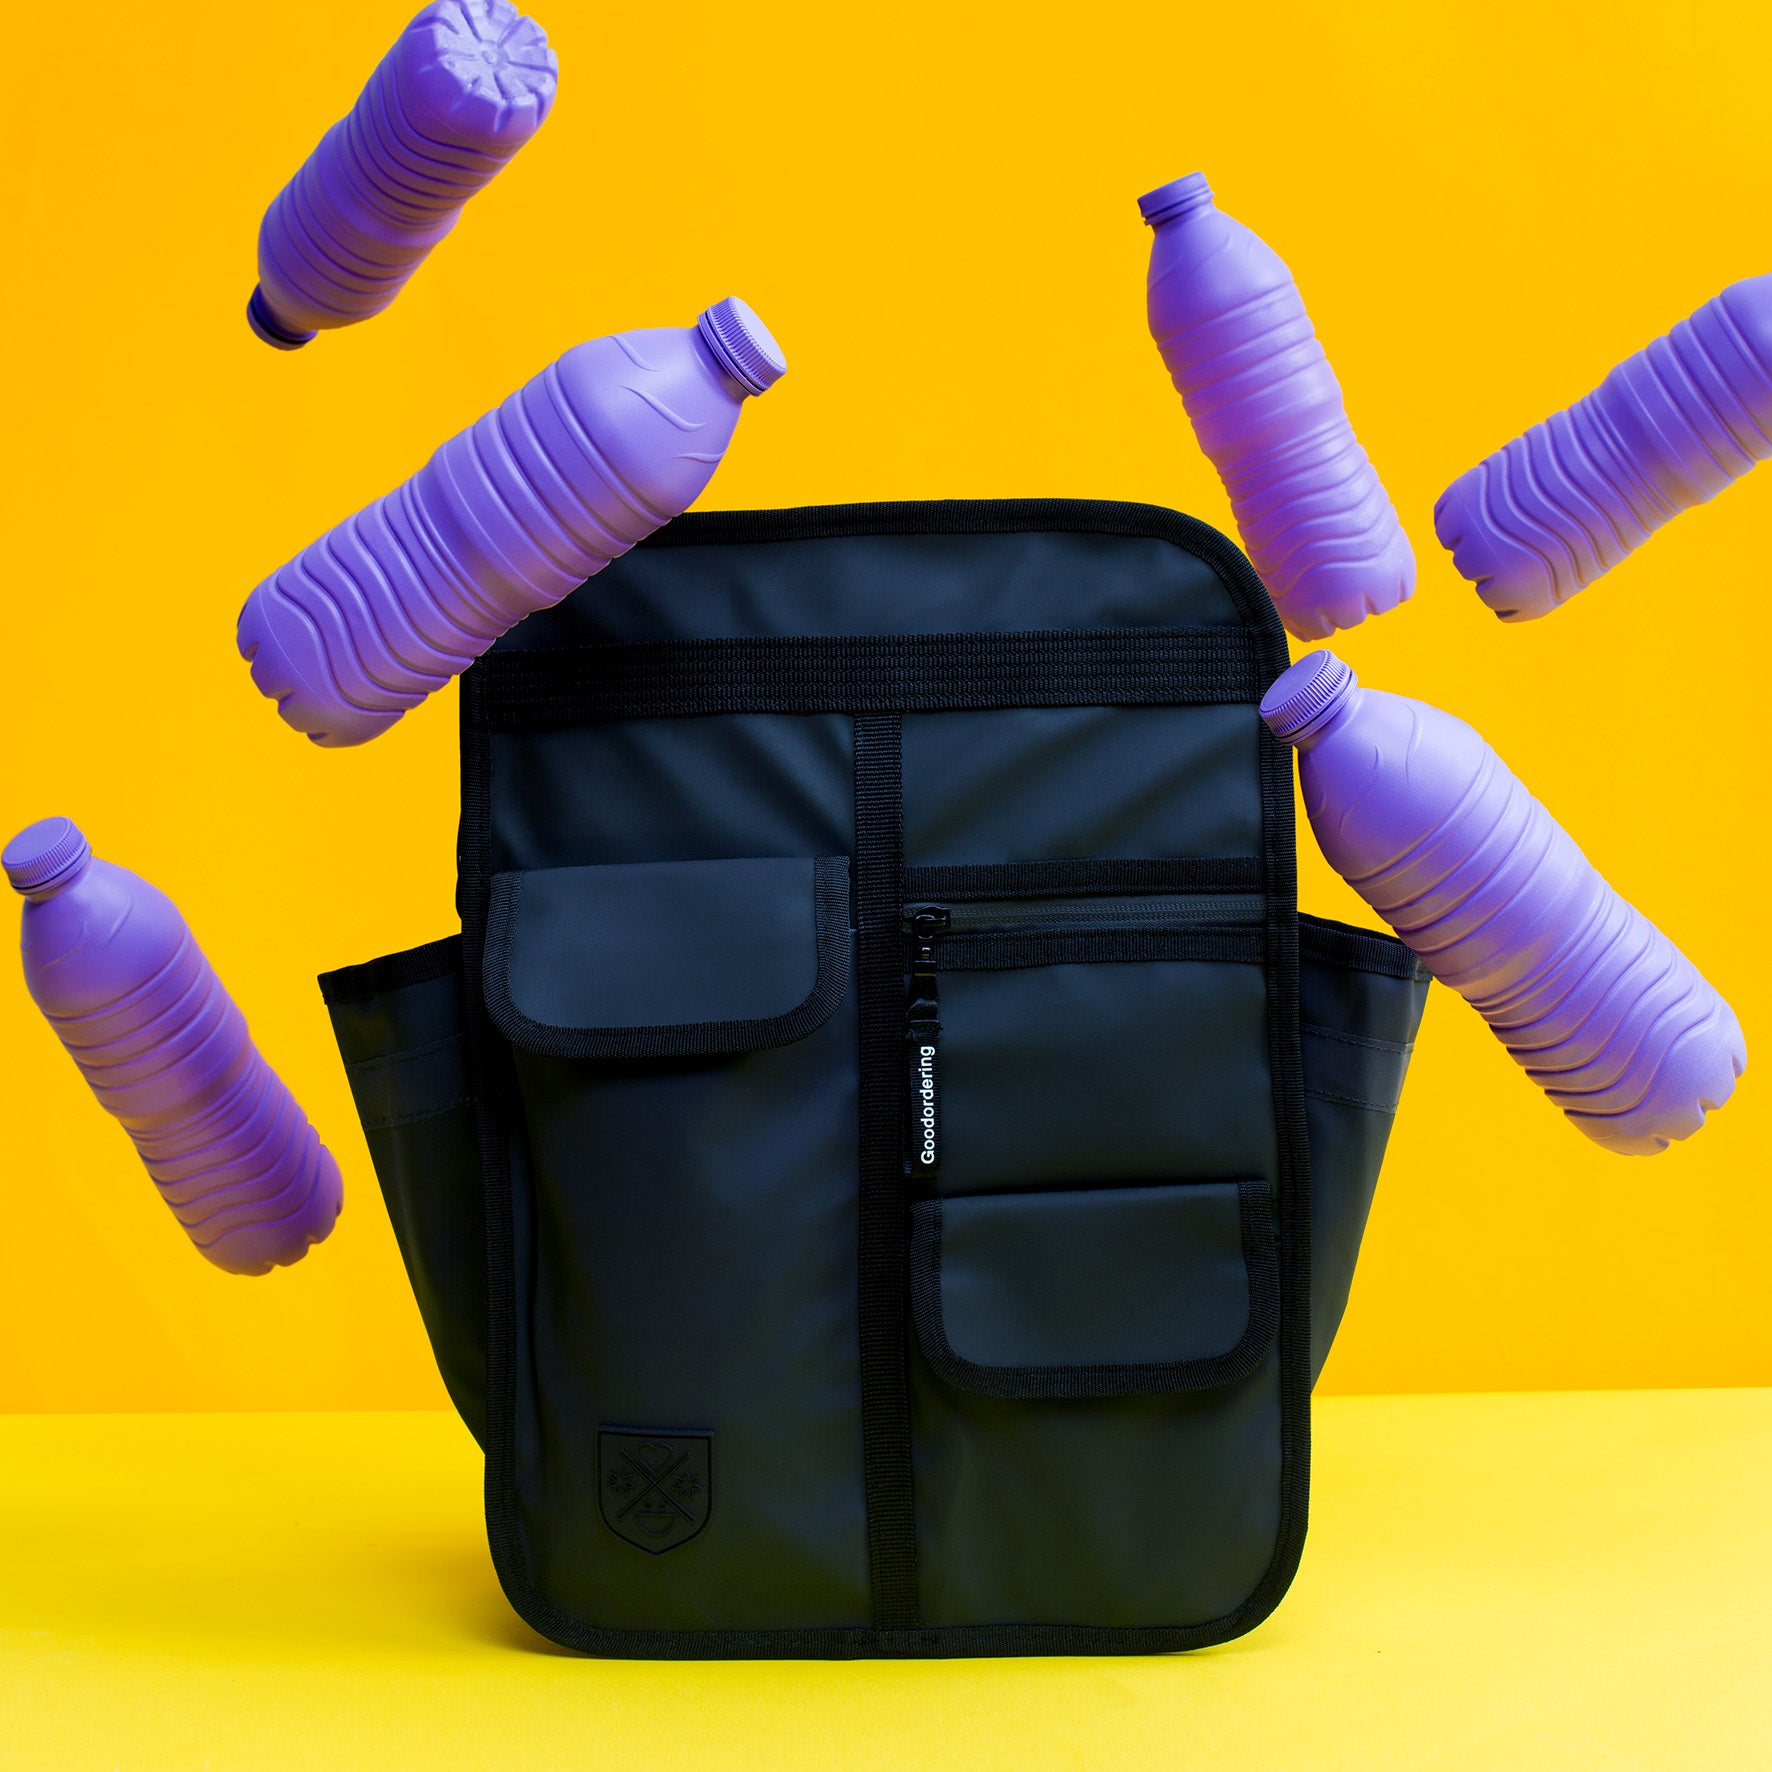 Goodordering monochrome backpack made from recycled water bottles